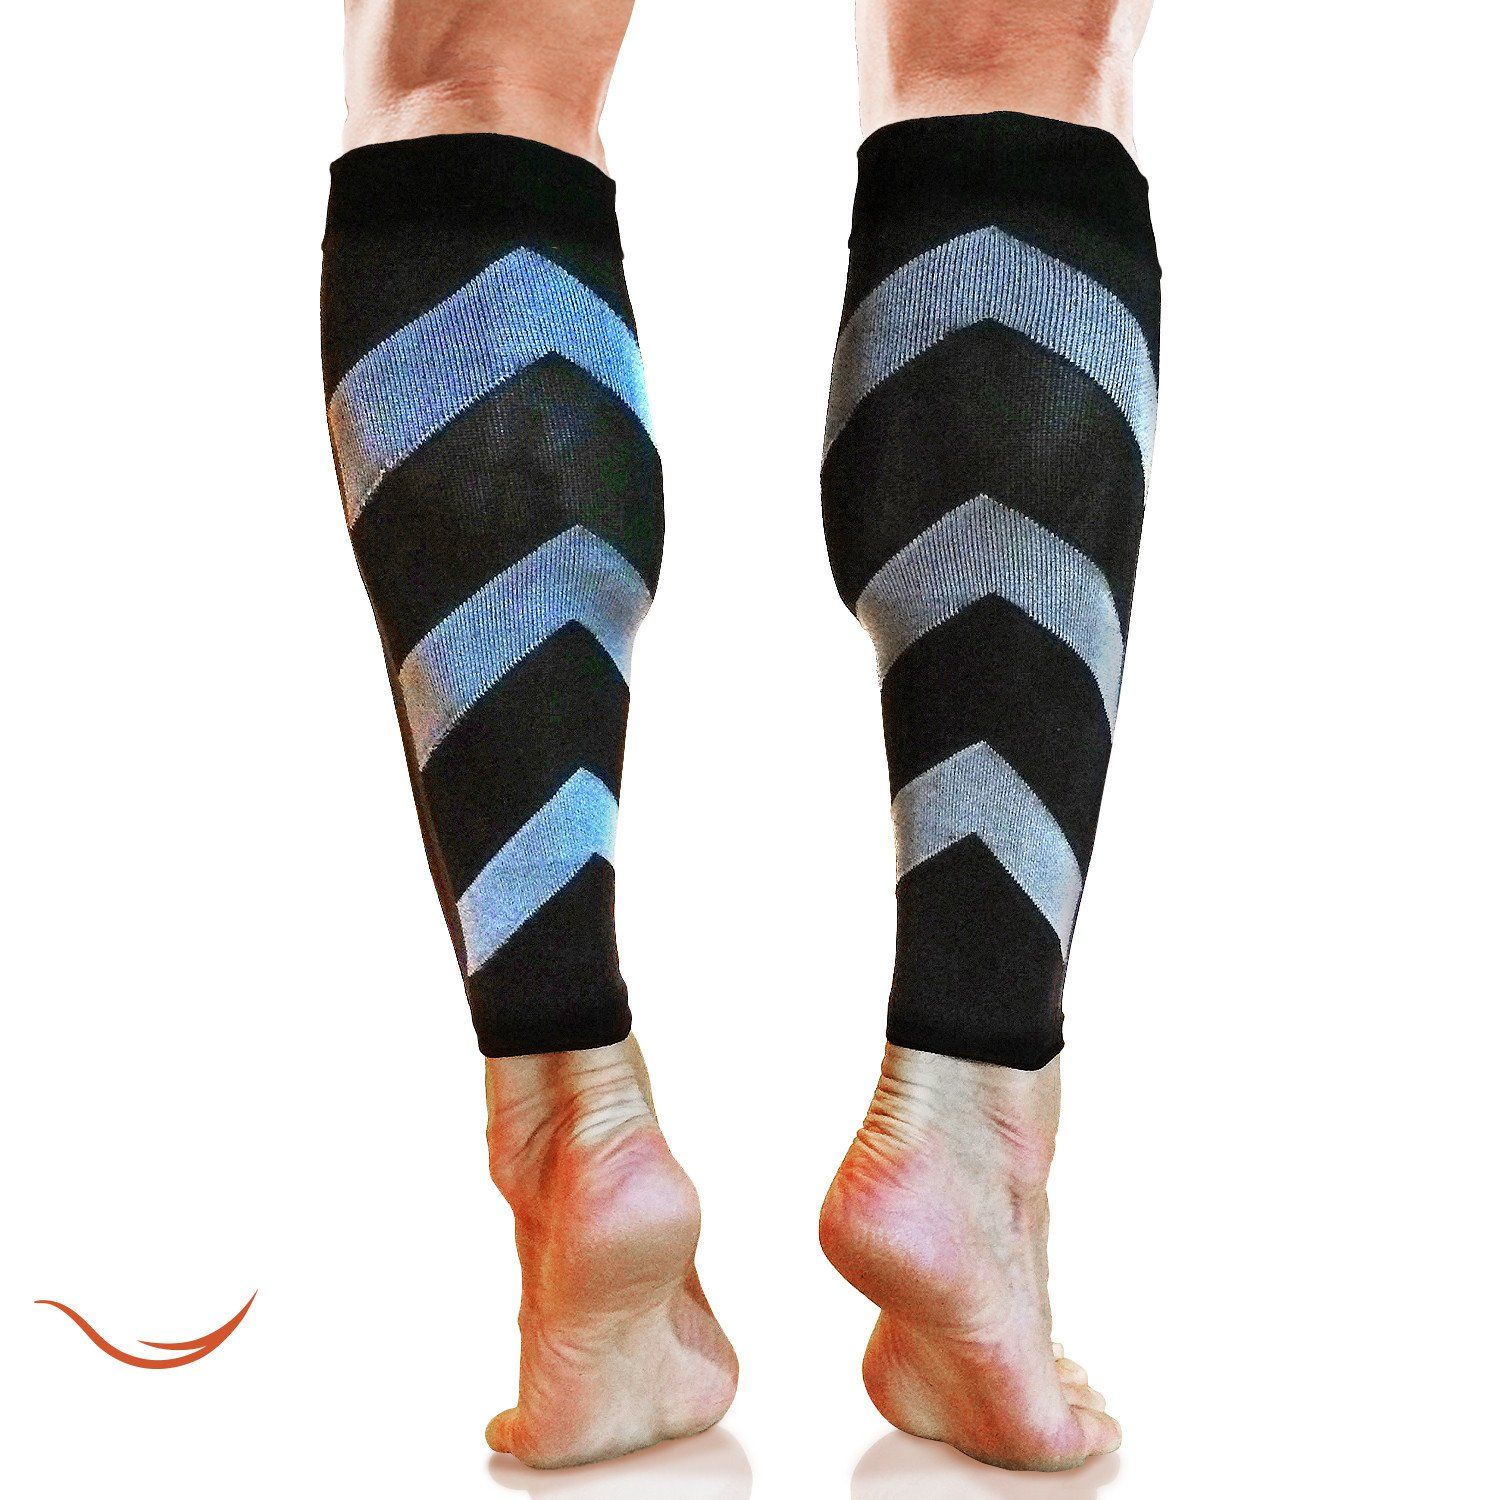 7120bddf994a5 Graduated Compression Calf Sleeves Guard Socks (1 Pair), Relief ...